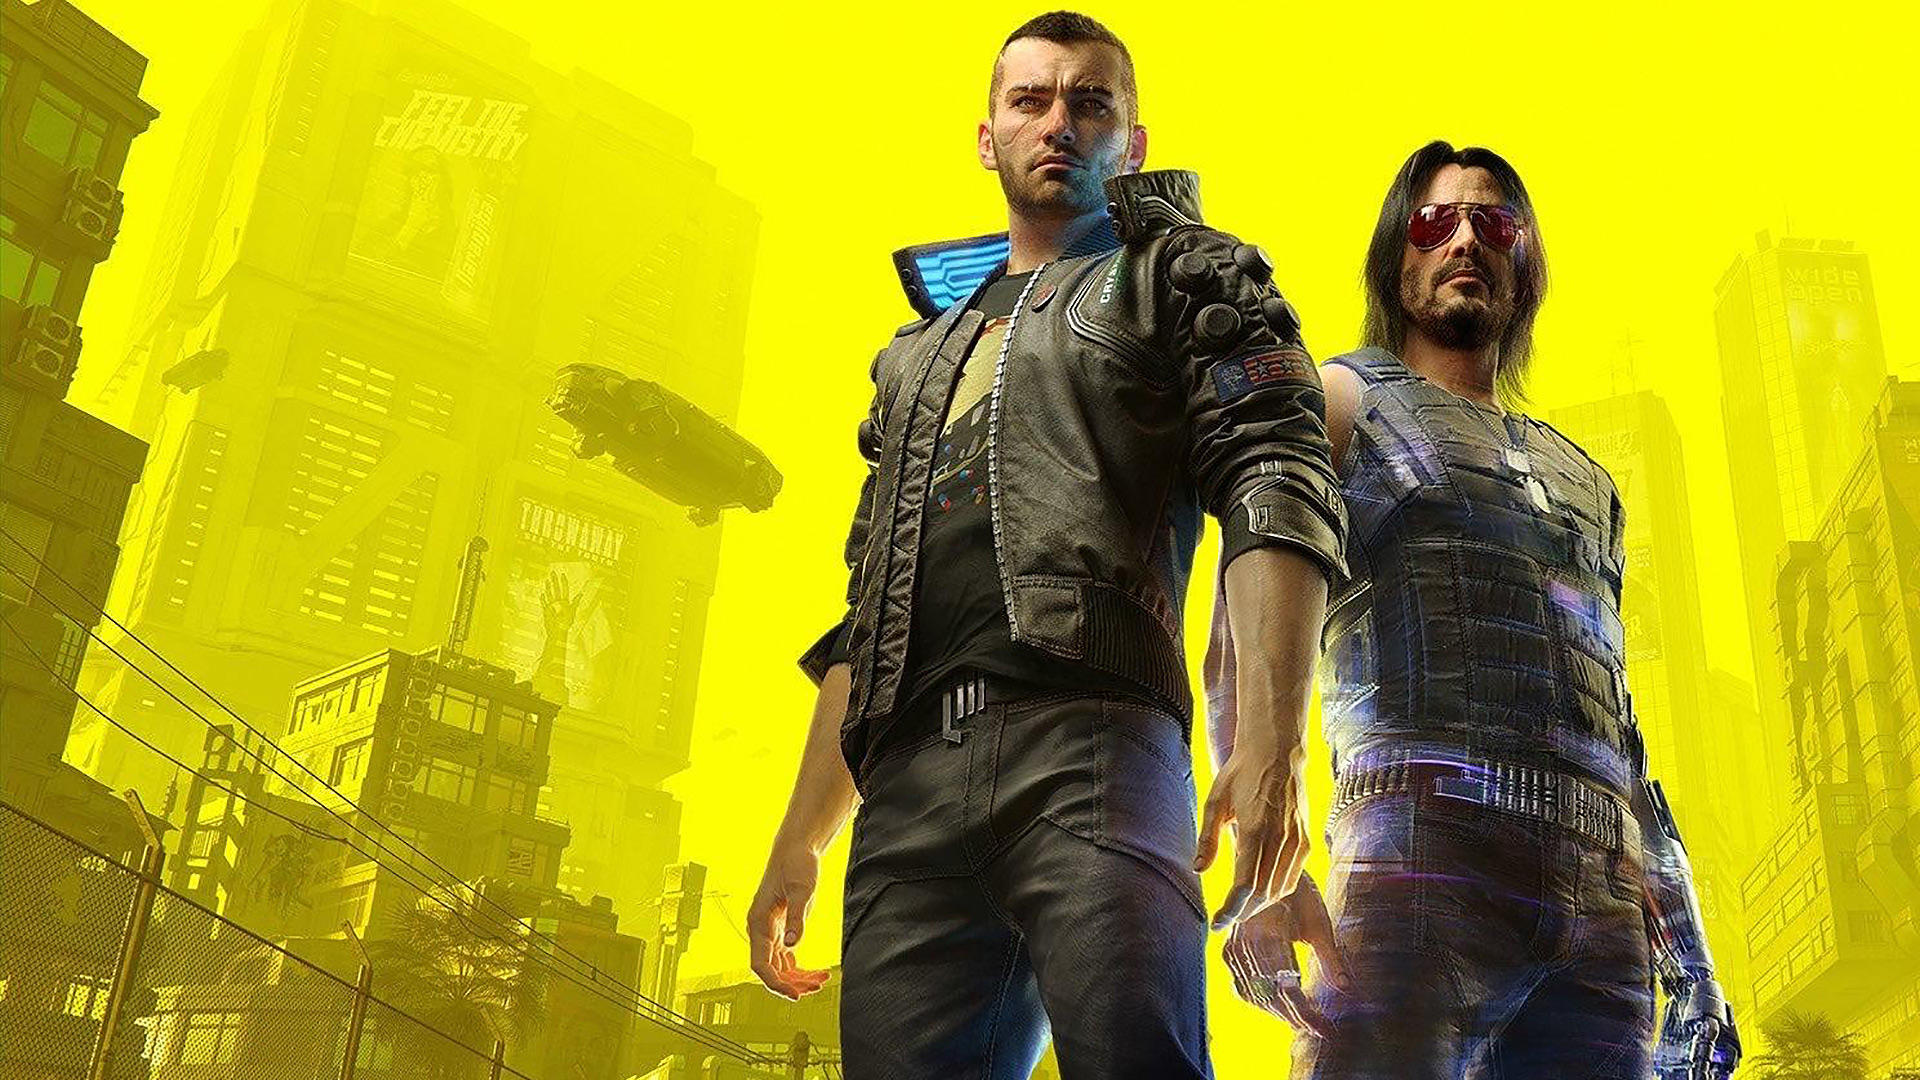 CD Projekt Red Promises To Continue Updating Cyberpunk 2077, With Two Large Patches Arriving In January And February